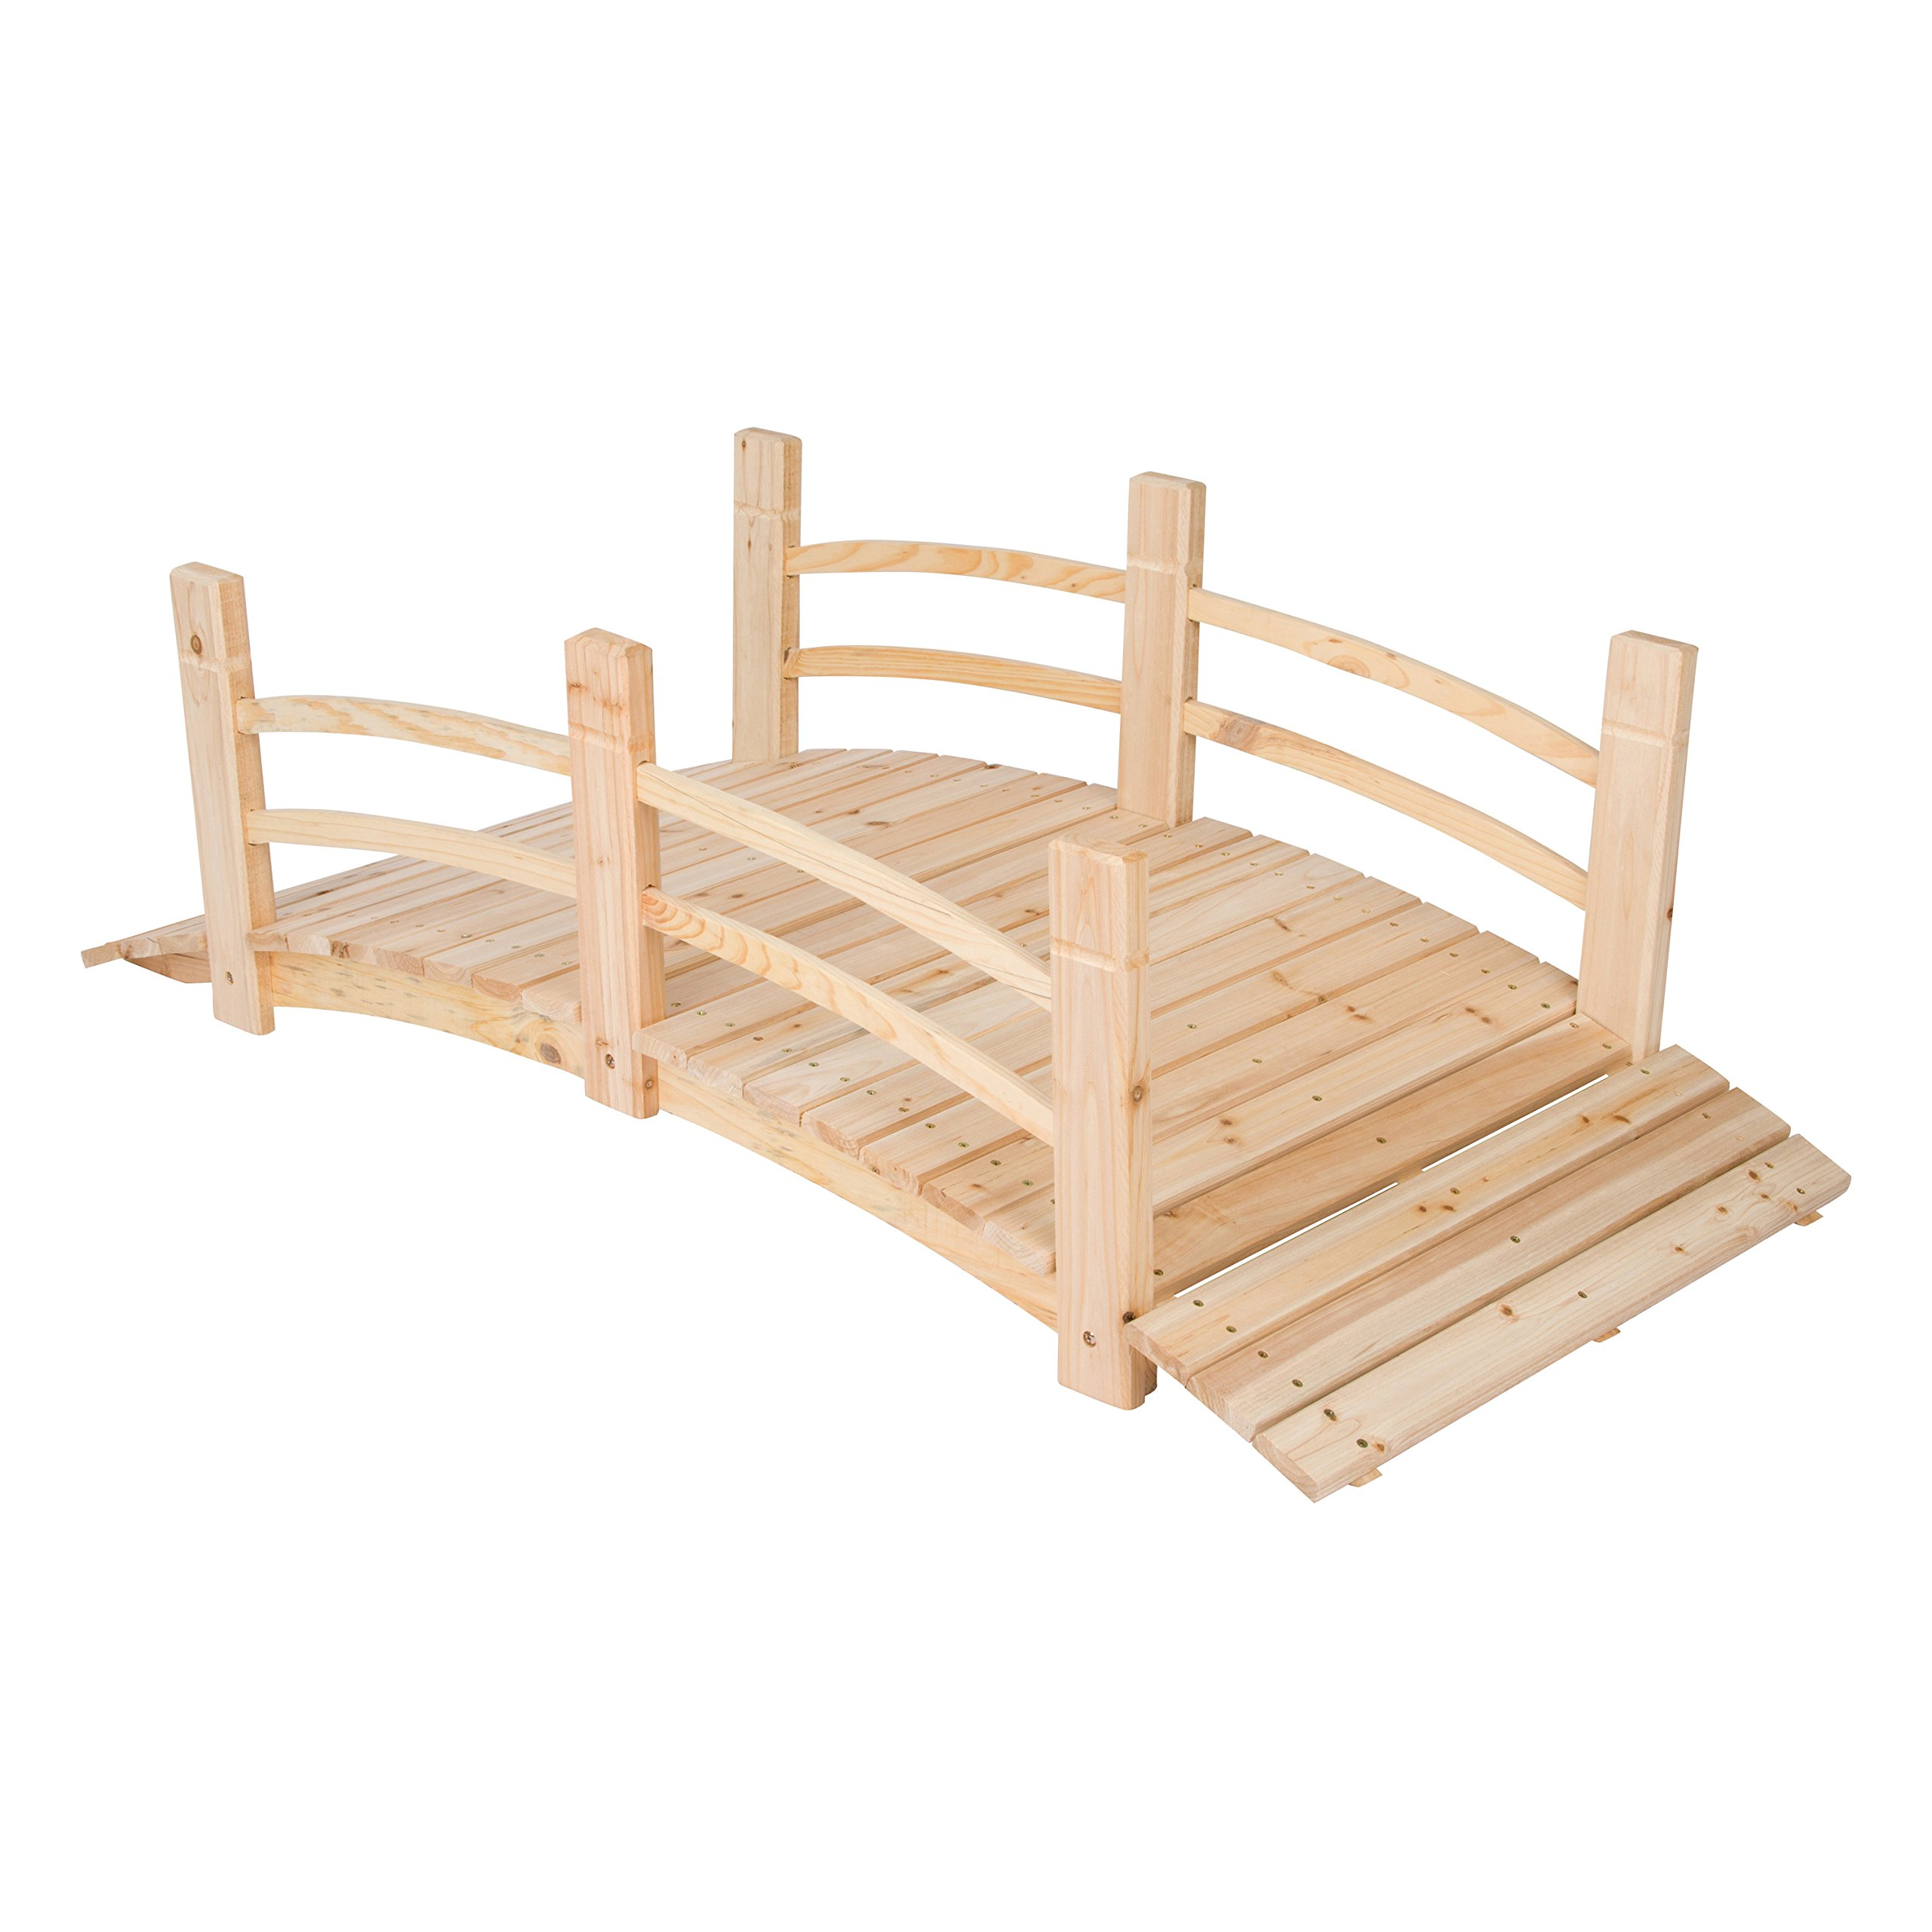 Shine Company 5 Ft. Cedar Garden Bridge, Natural by Shine Company Inc.